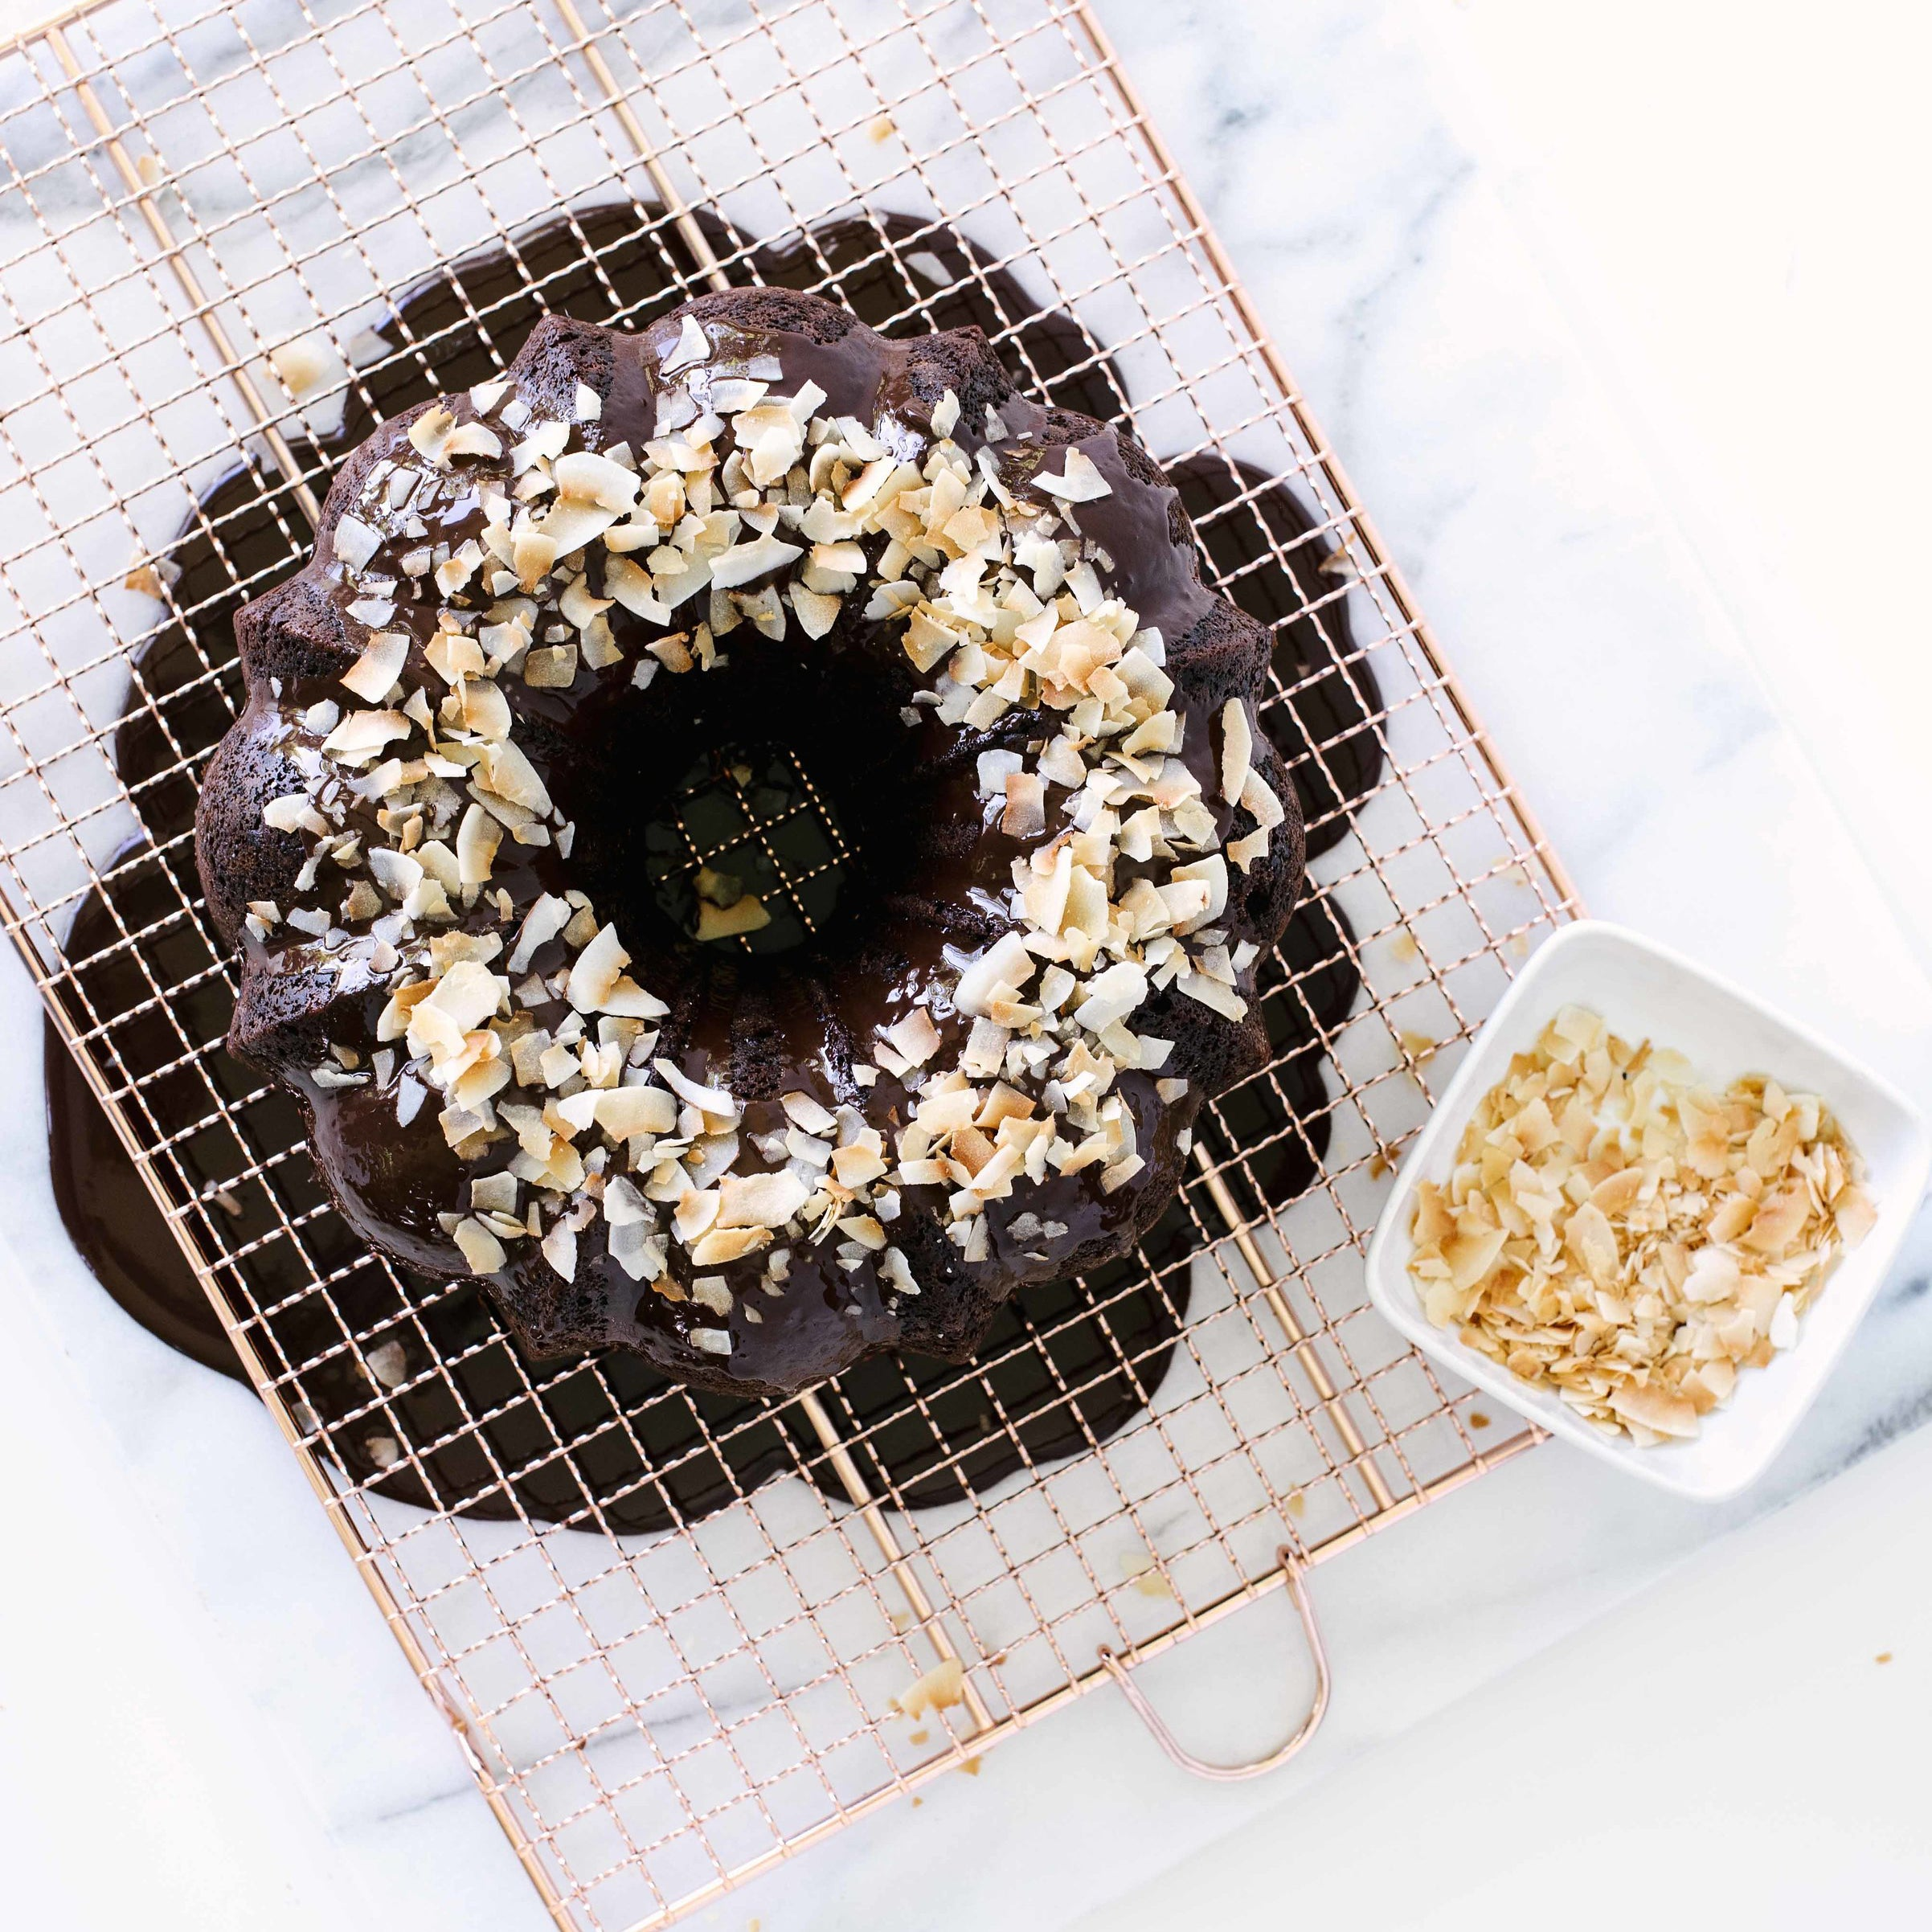 Top of Miss Jones Dark Chocolate Coconut Bundt Cake on a baking sheet with toasted coconut flakes on the cake and in a bowl to the side